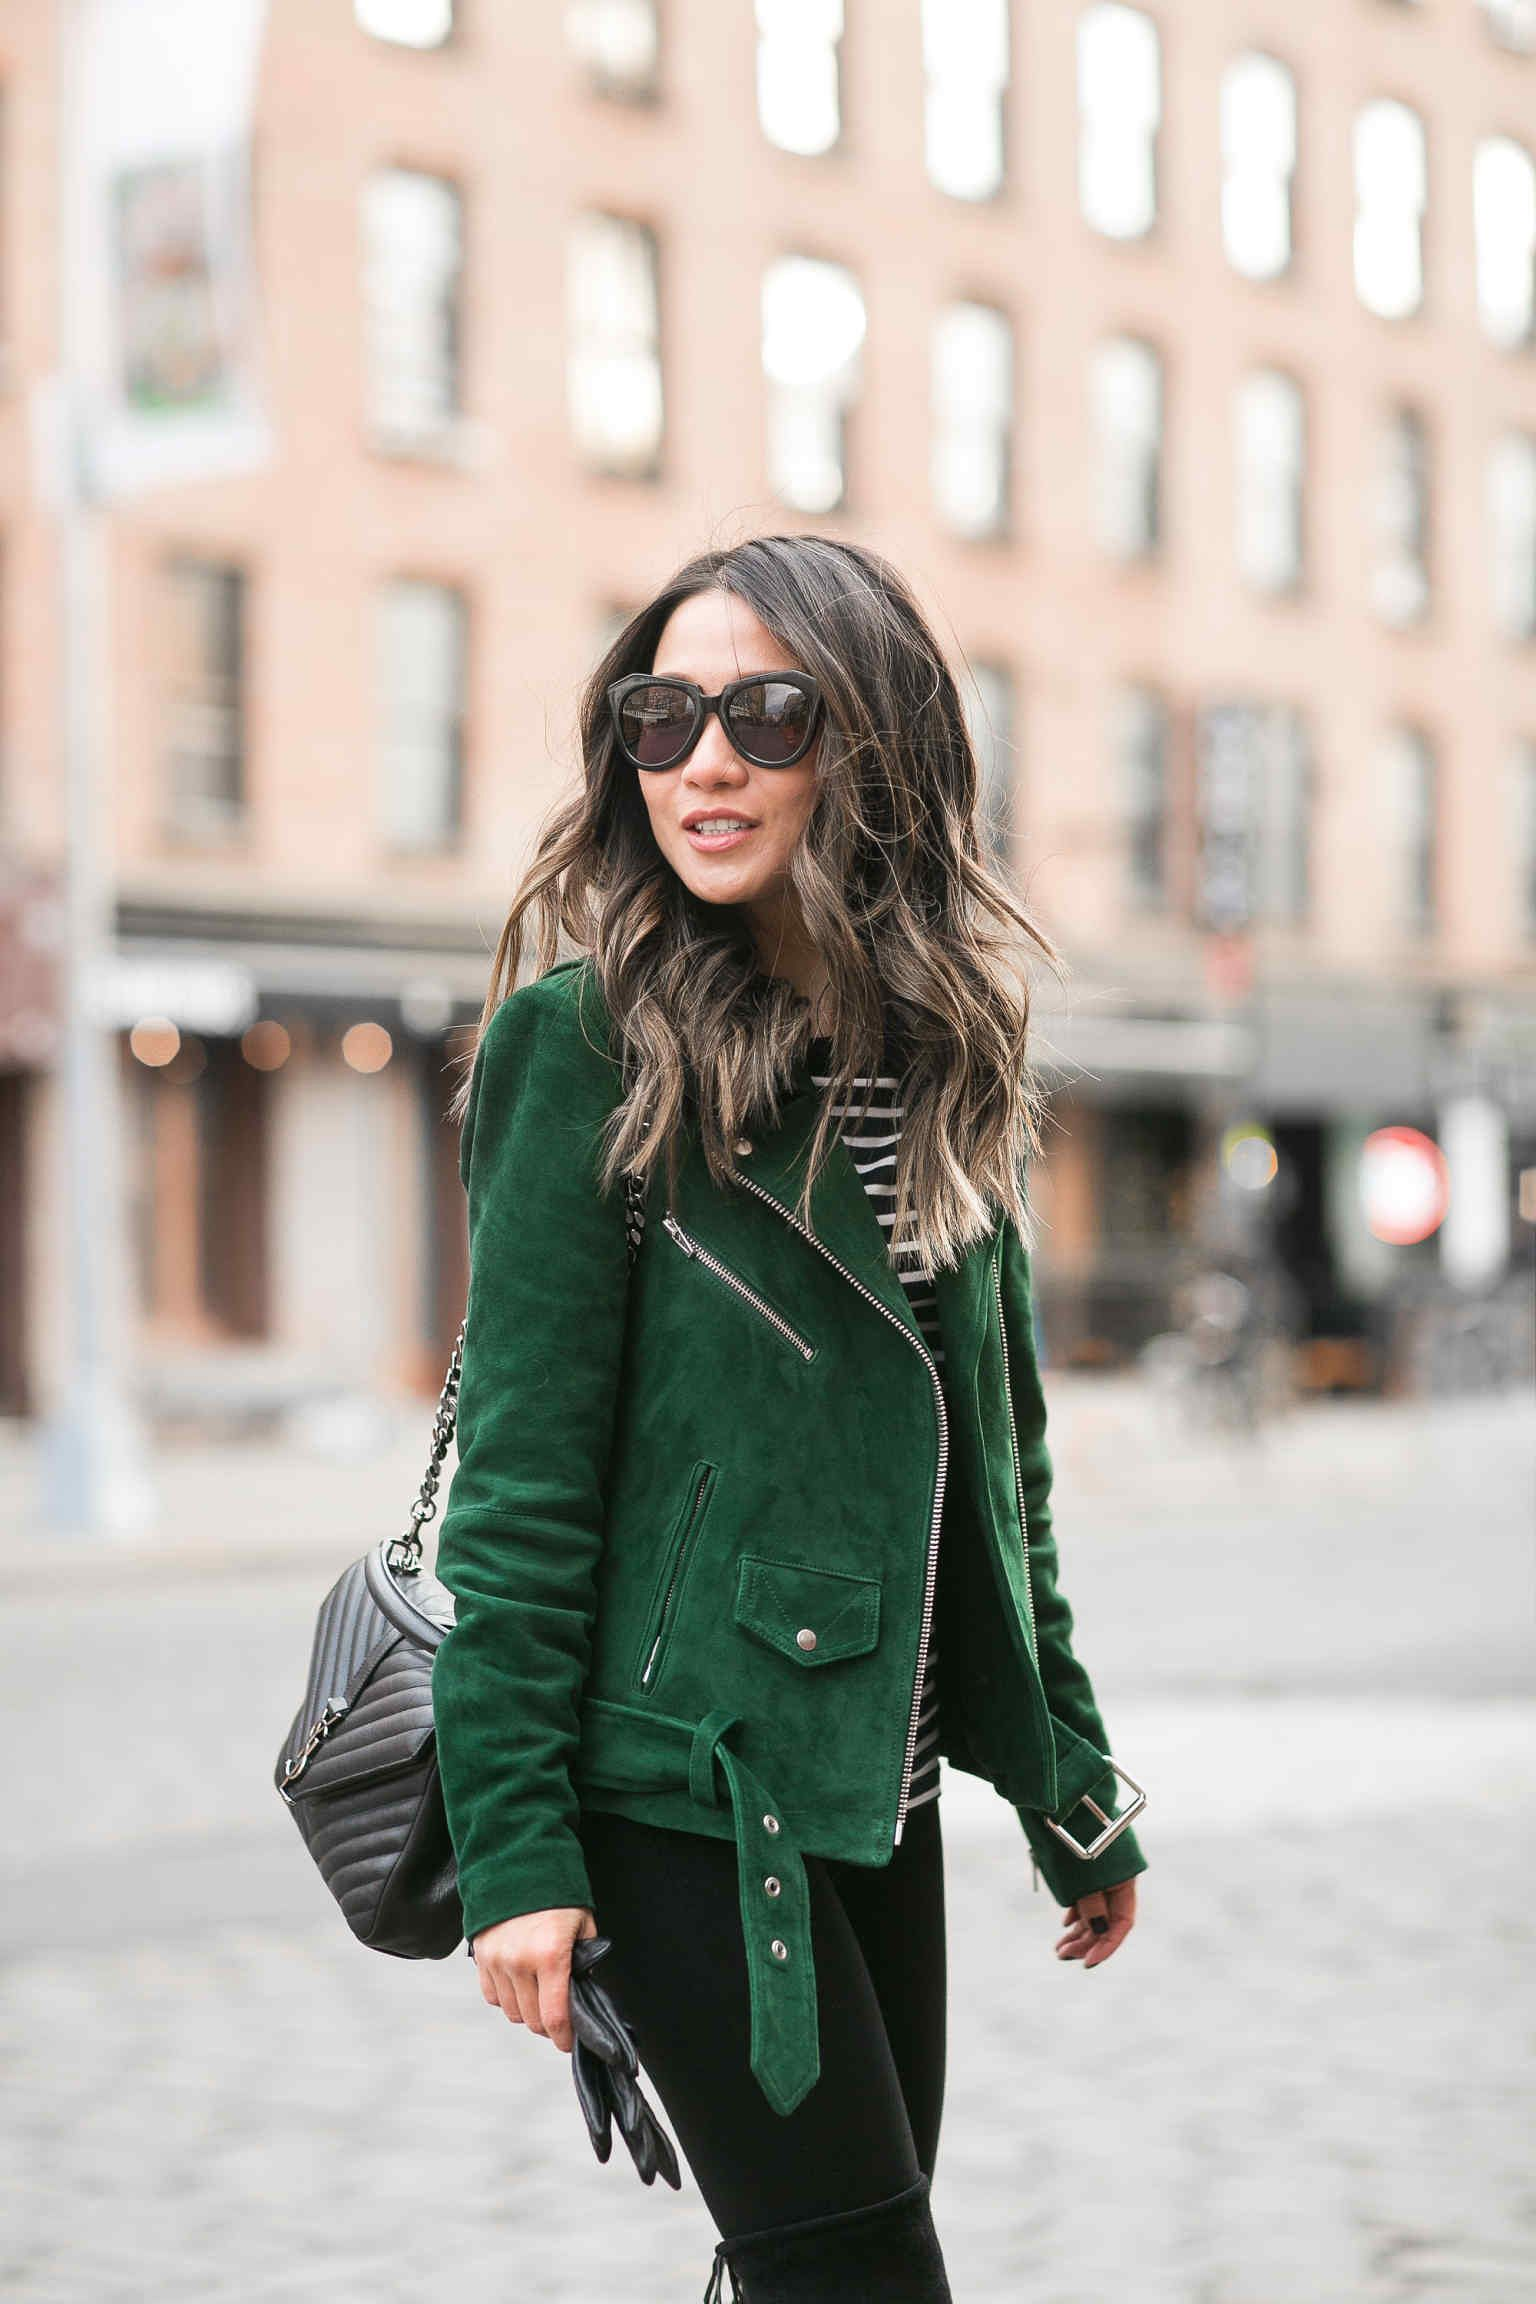 Frozen Green suede jacket & High boots Green suede